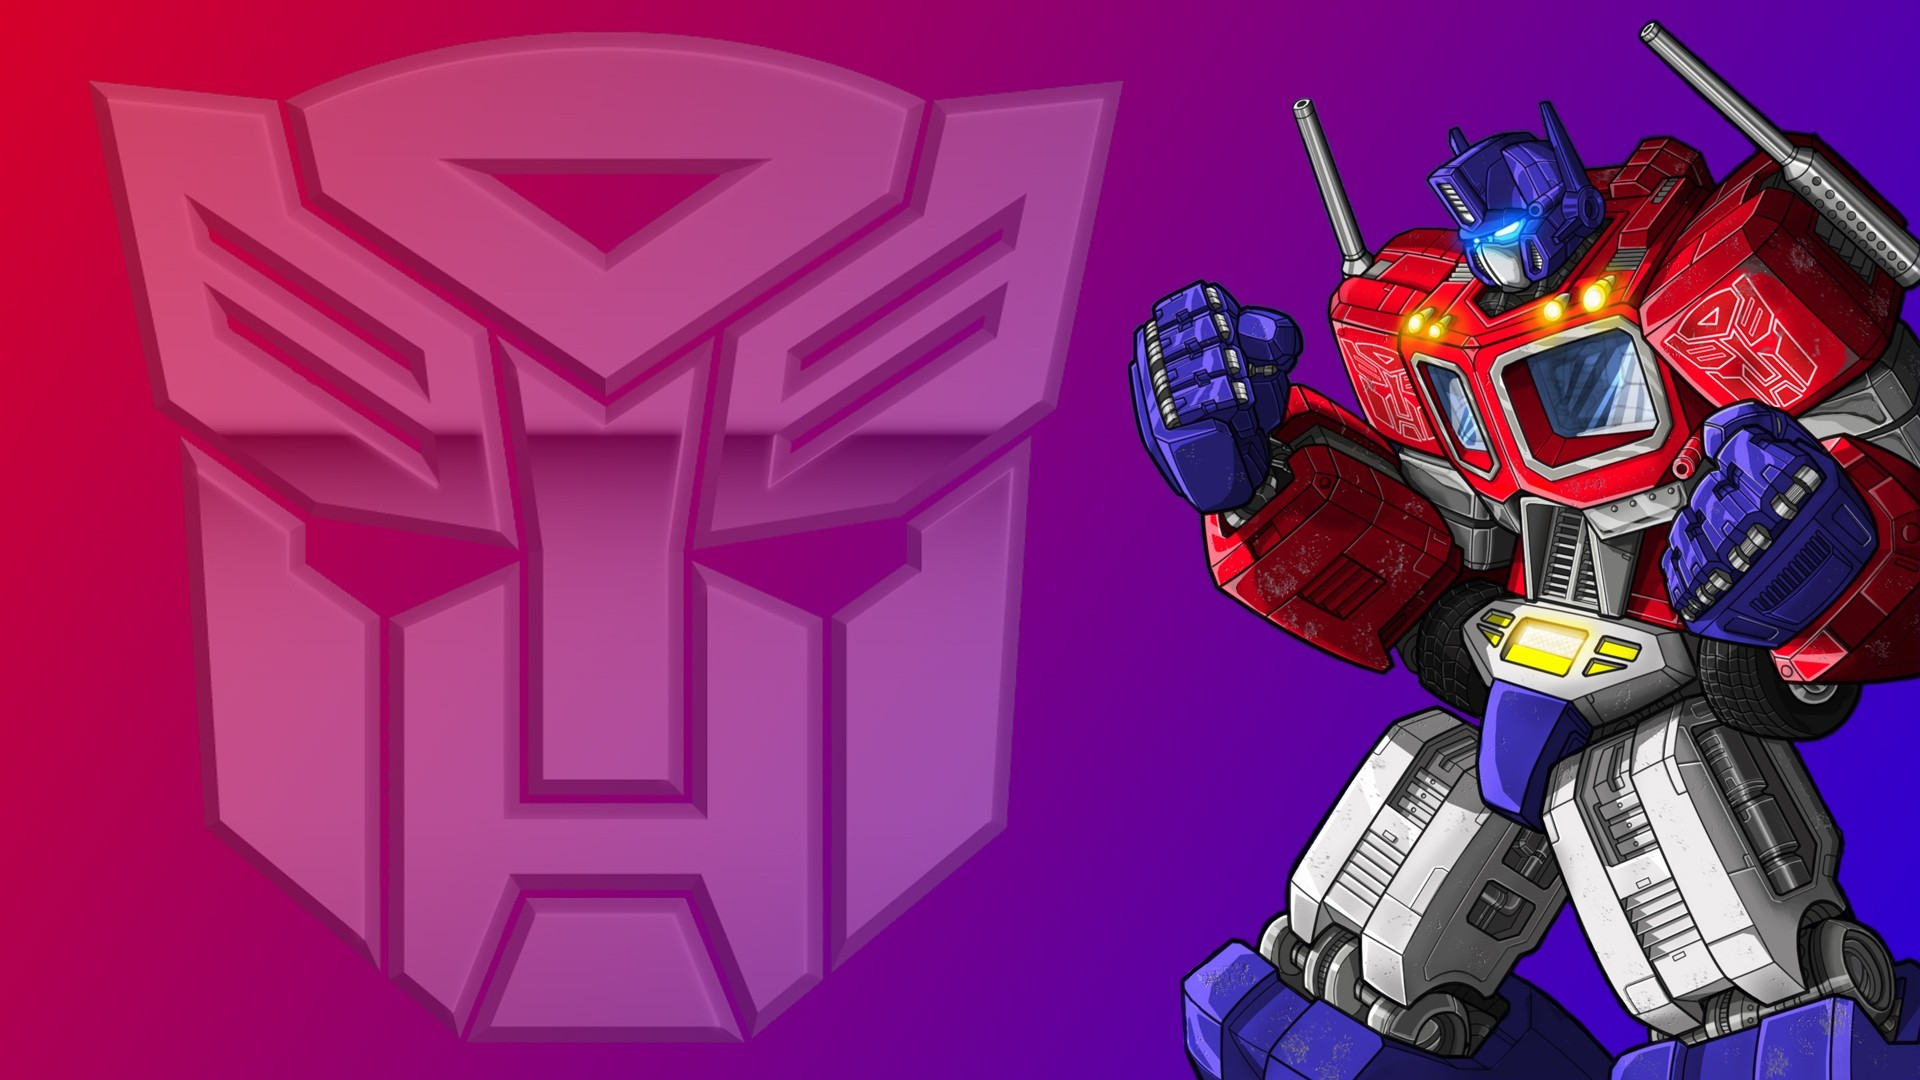 Res: 1920x1080, Transformers Autobots HD Wallpaper | Background Image |  |  ID:389747 - Wallpaper Abyss